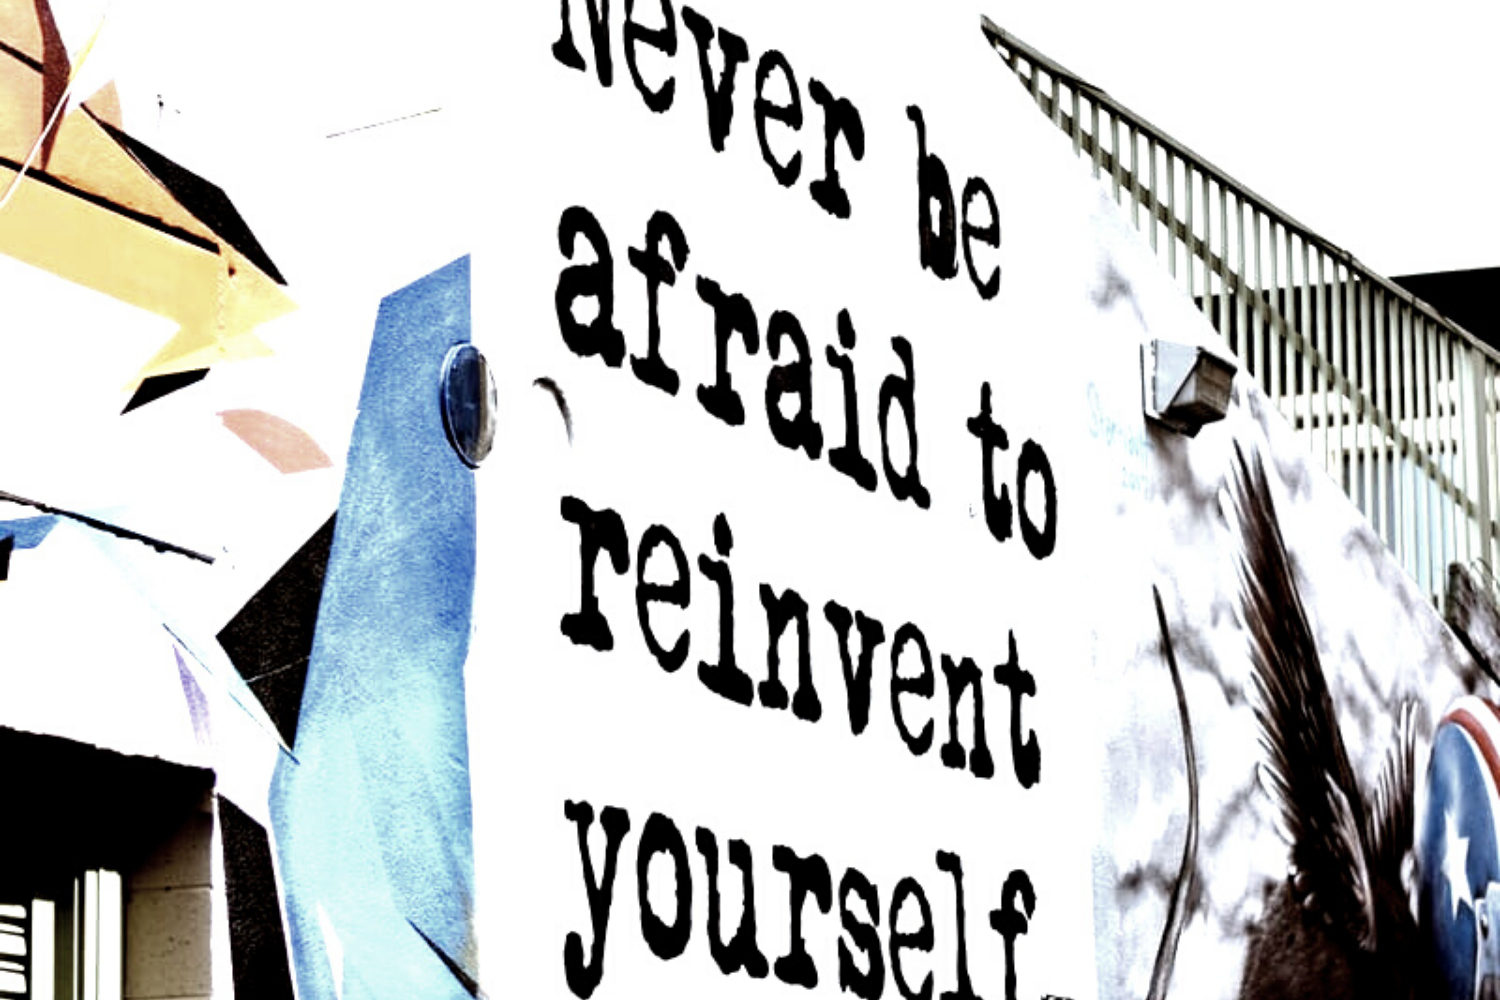 Never be afraid to reinvent yourself